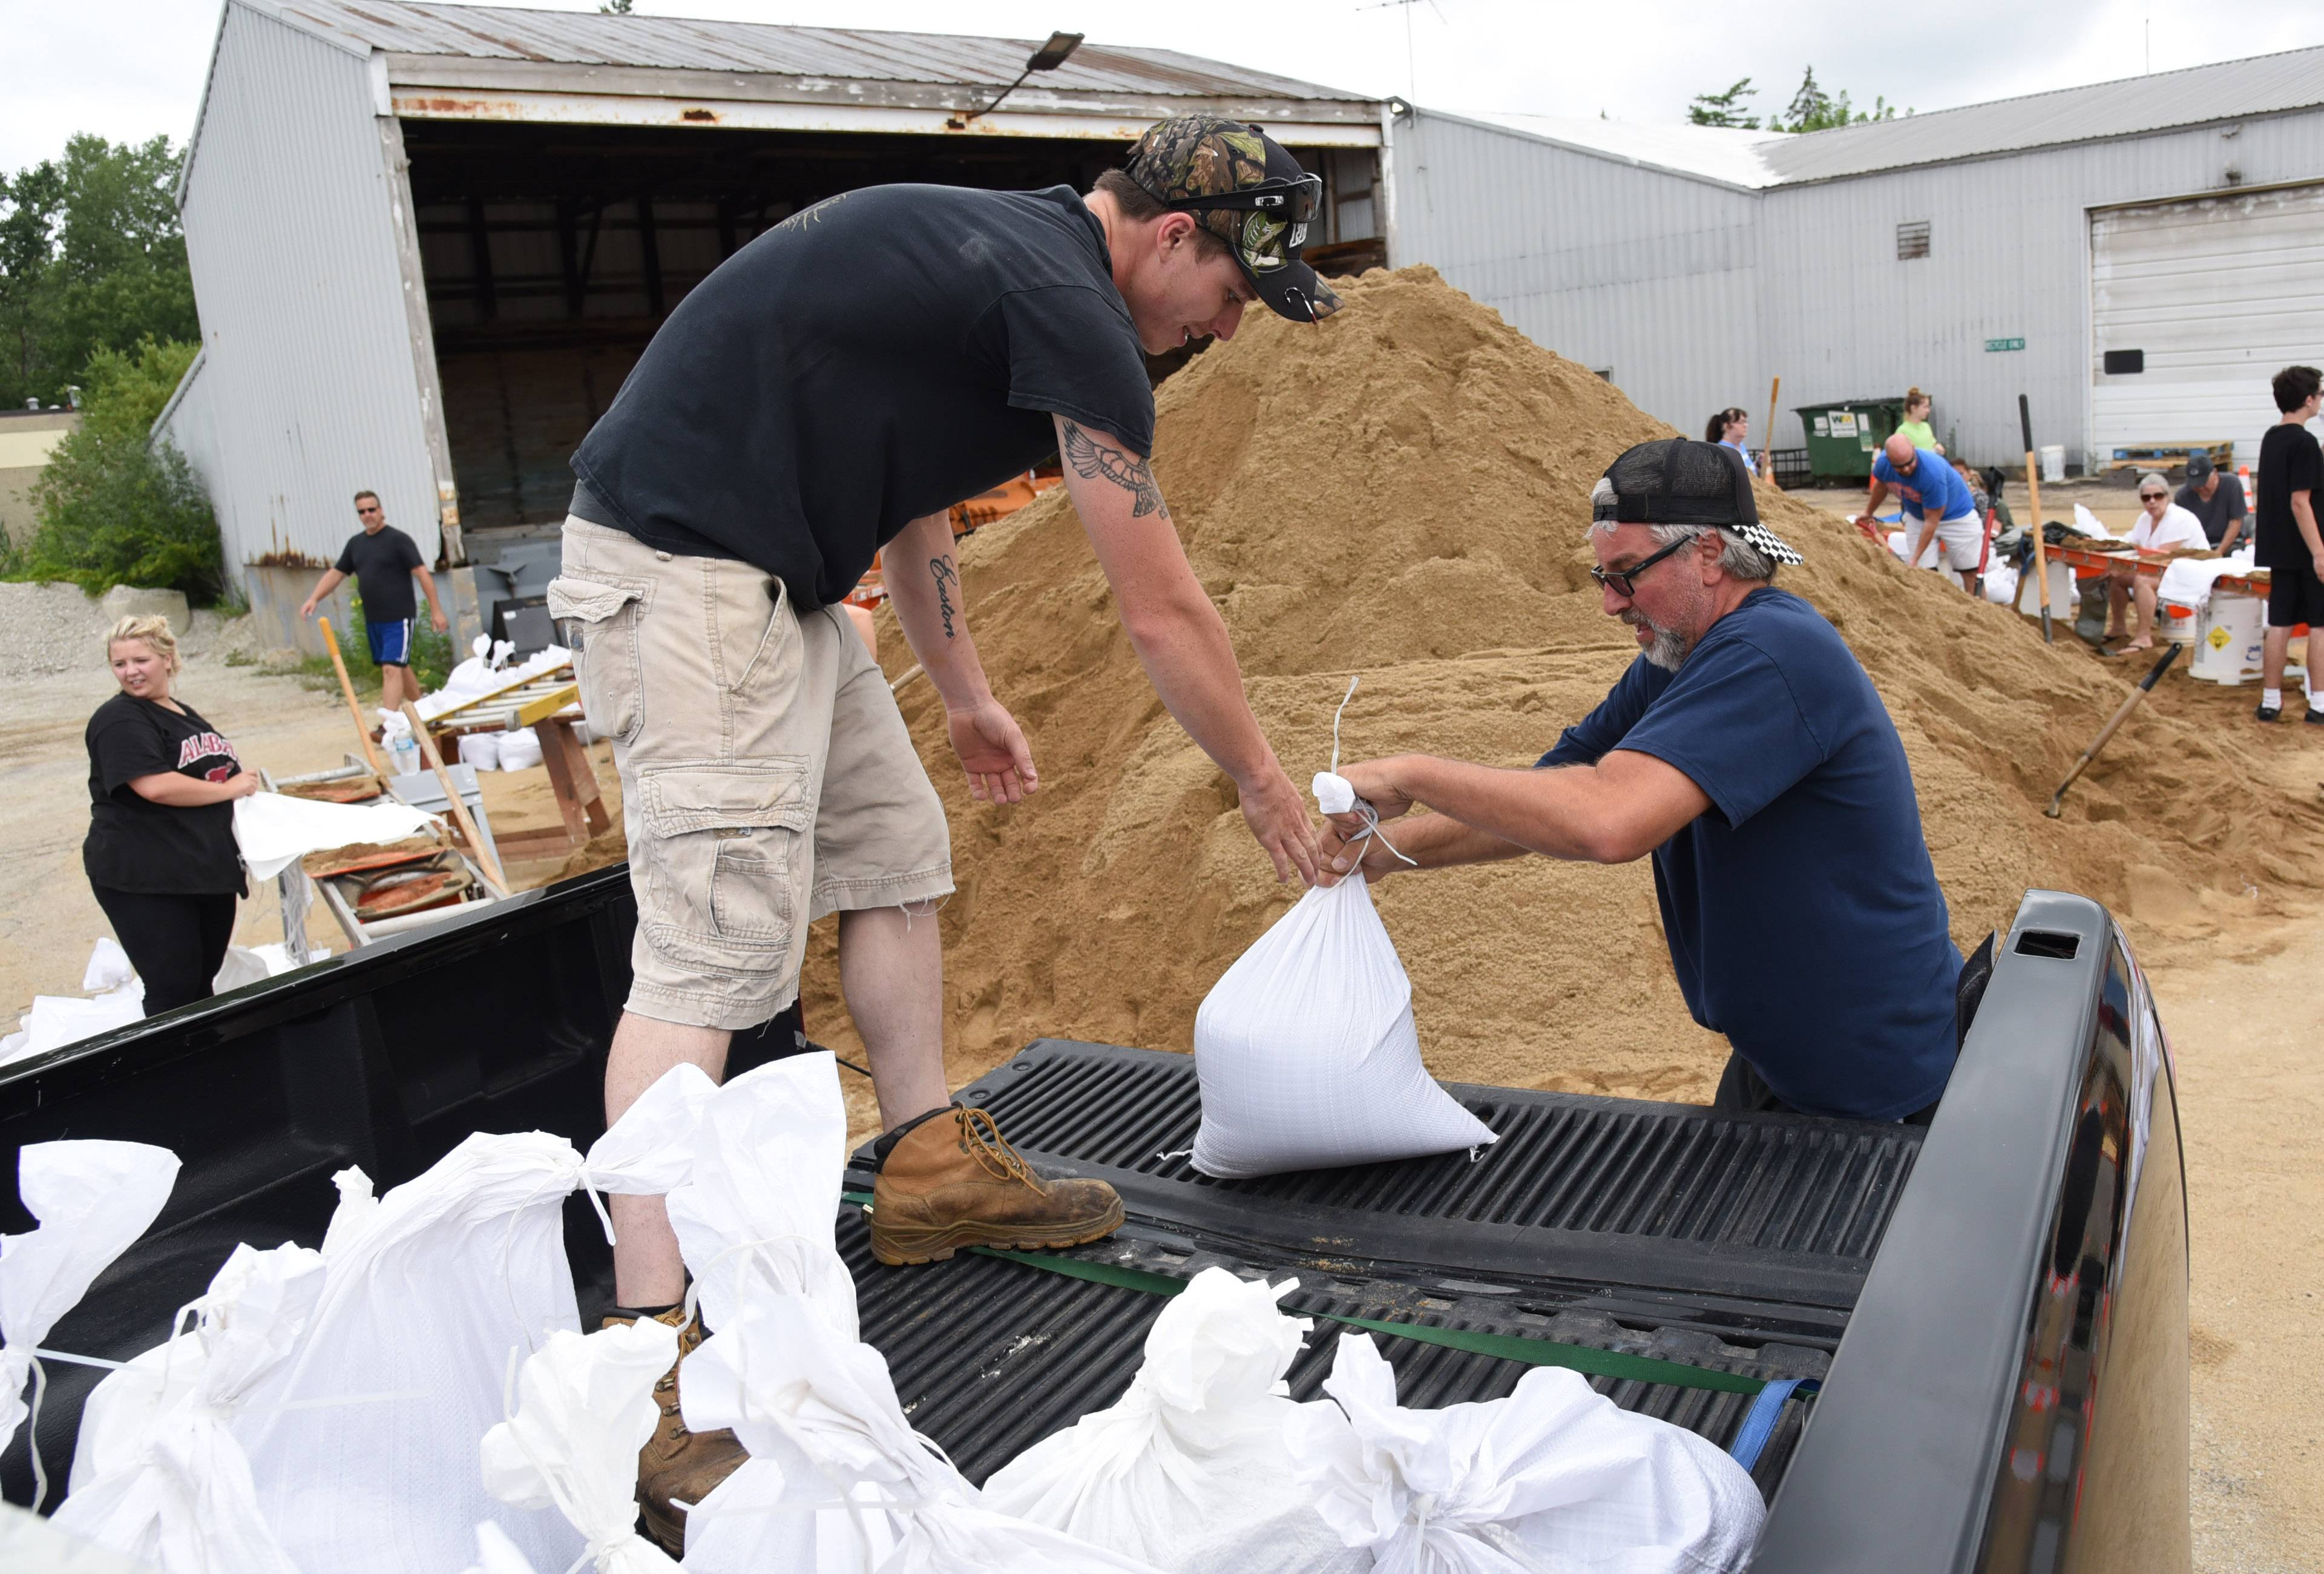 Volunteer Cory Wedge of Round Lake, left, helps Fox Lake resident Dan Vezensky load his truck with sandbags Sunday morning at the Fox Lake Public Works facility.